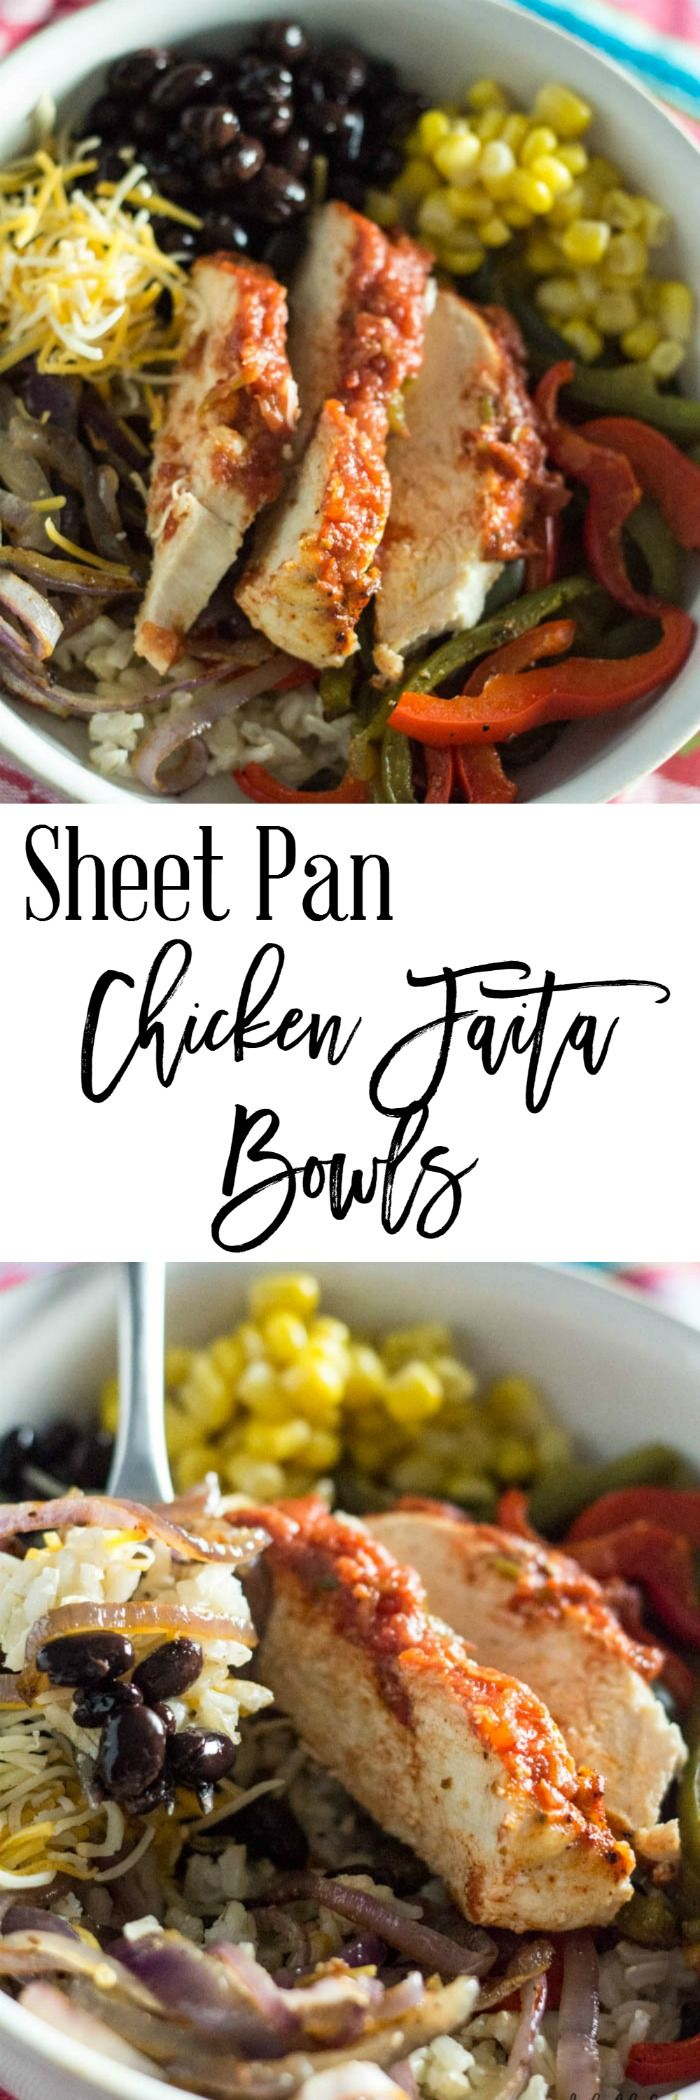 This easy sheet pan chicken fajita bowl recipe is perfect for your family. It's easy to make and only 6 SmartPoints per serving on Weight Watchers. http://dashofherbs.com/sheet-pan-chicken-fajita-bowl/